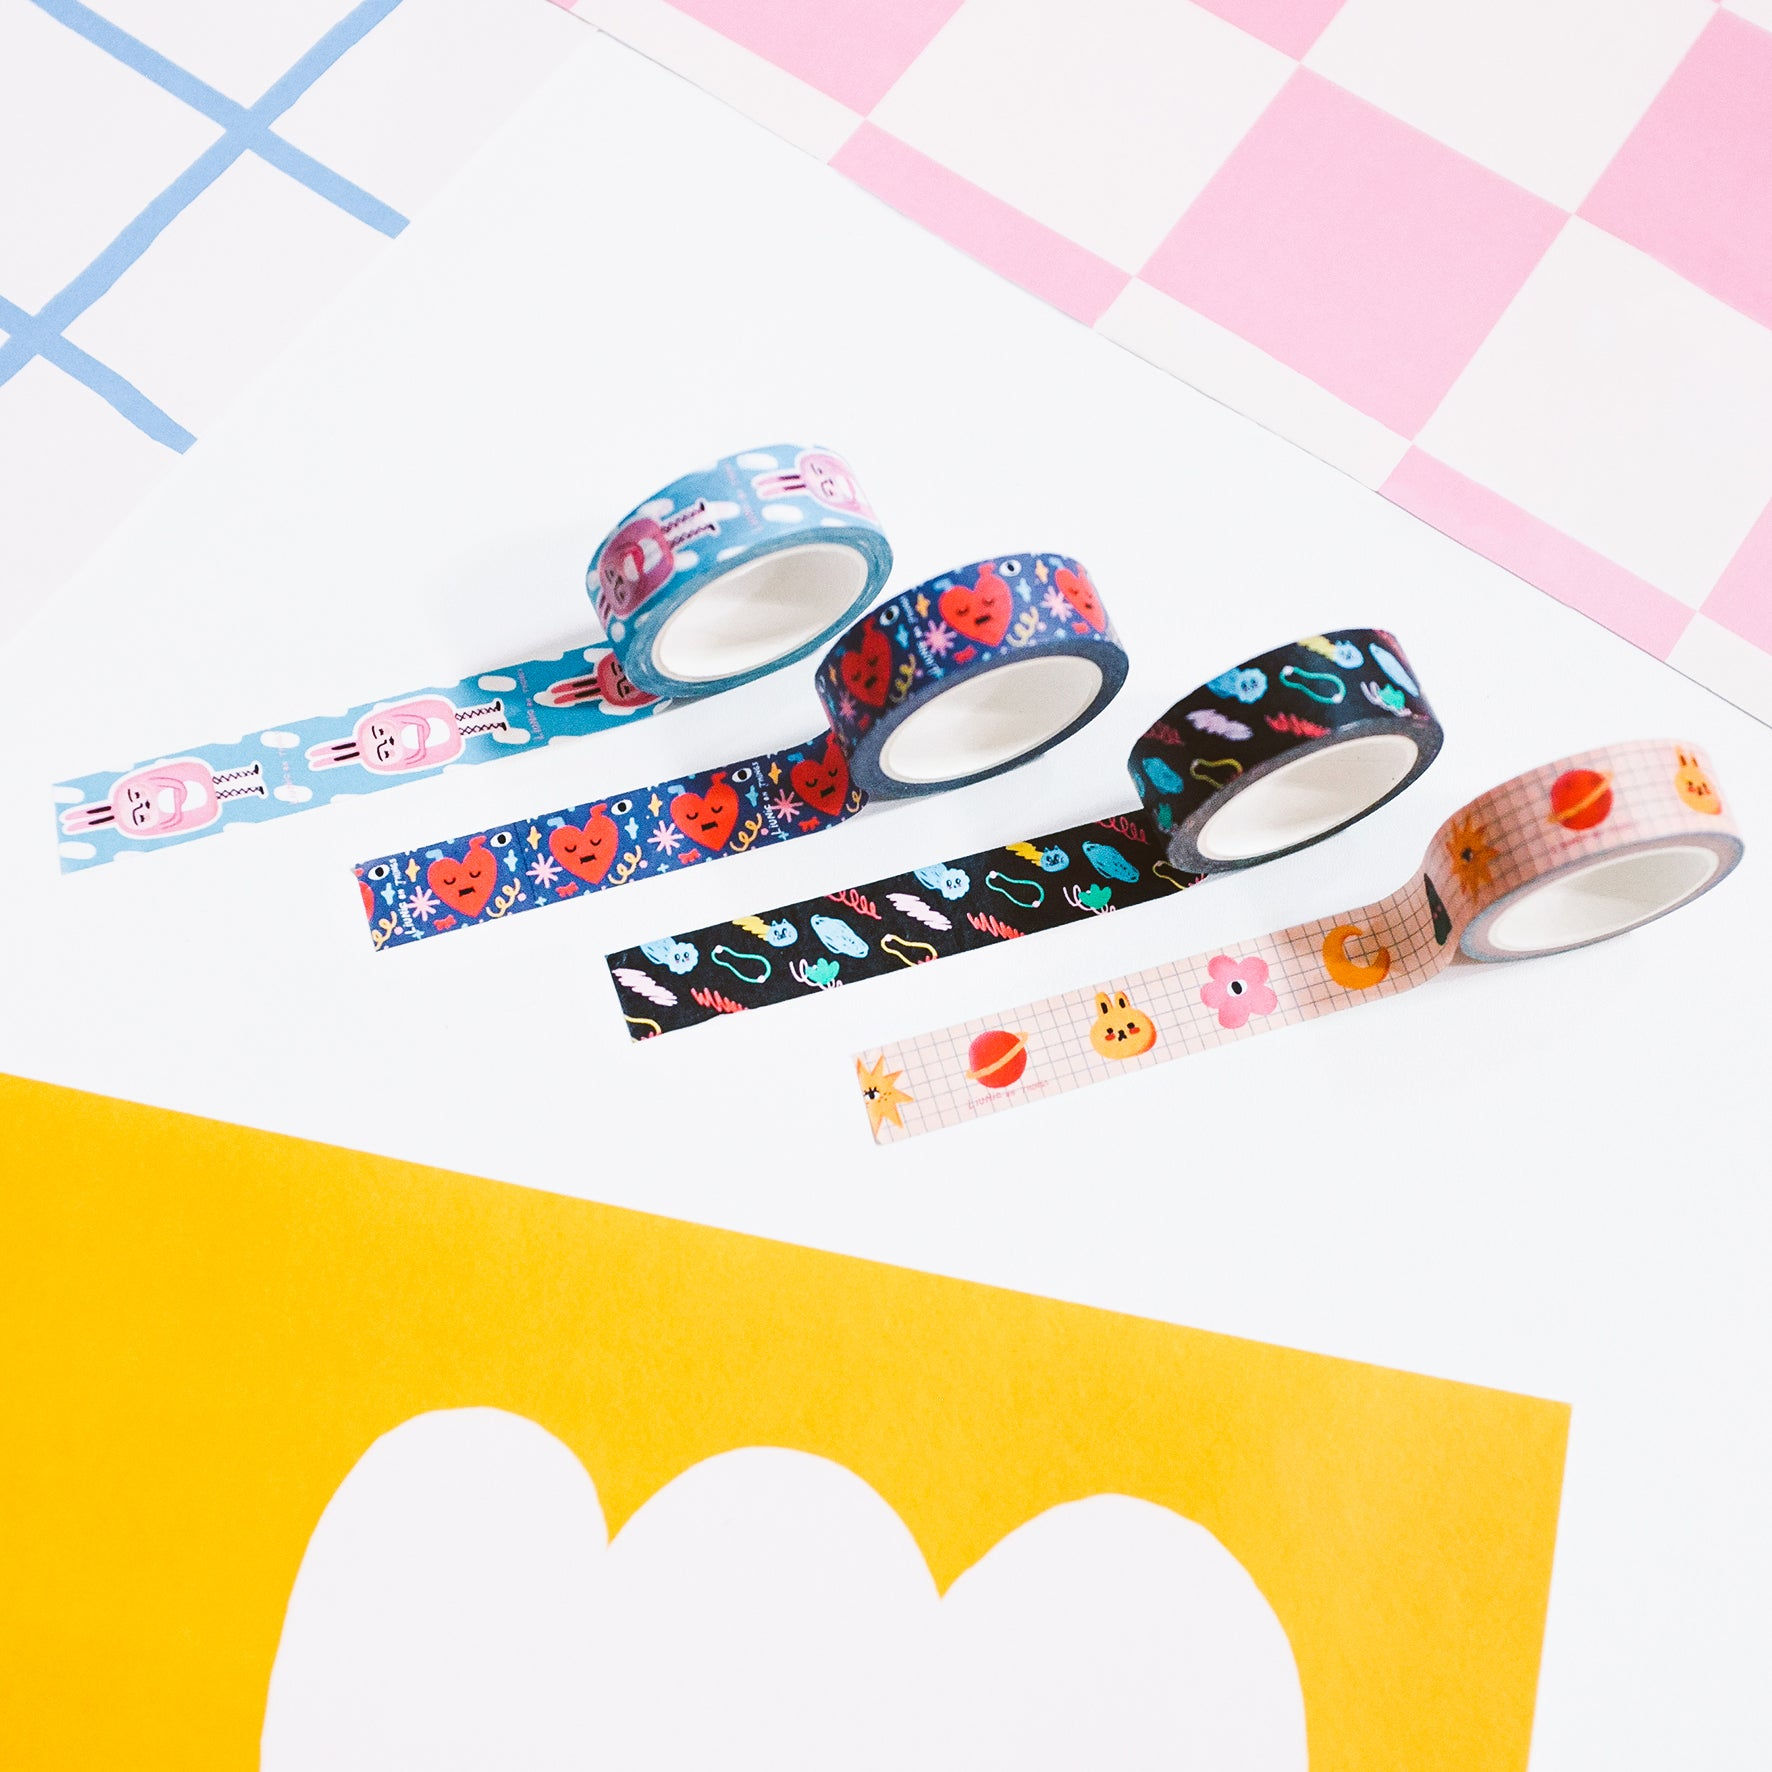 Liunic on Things Washi Tapes